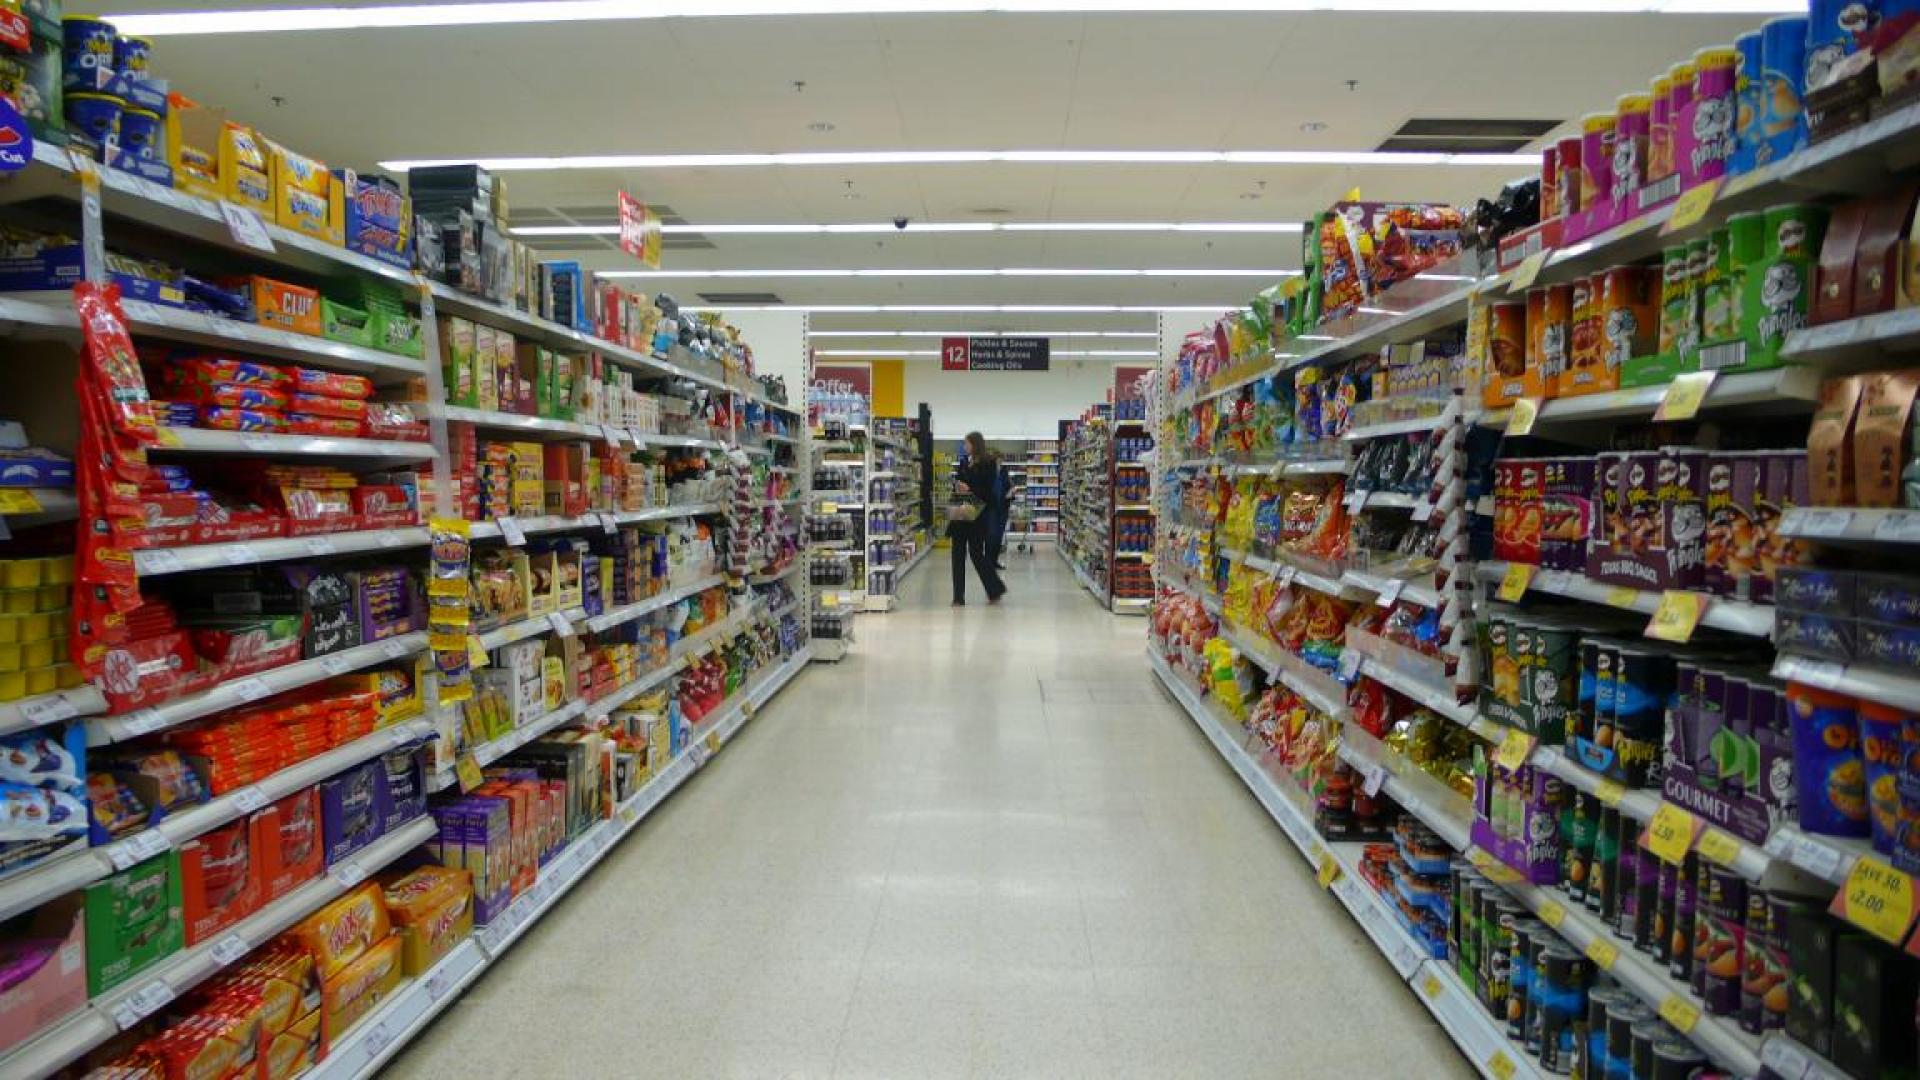 Photo shows consumer goods in a supermarket